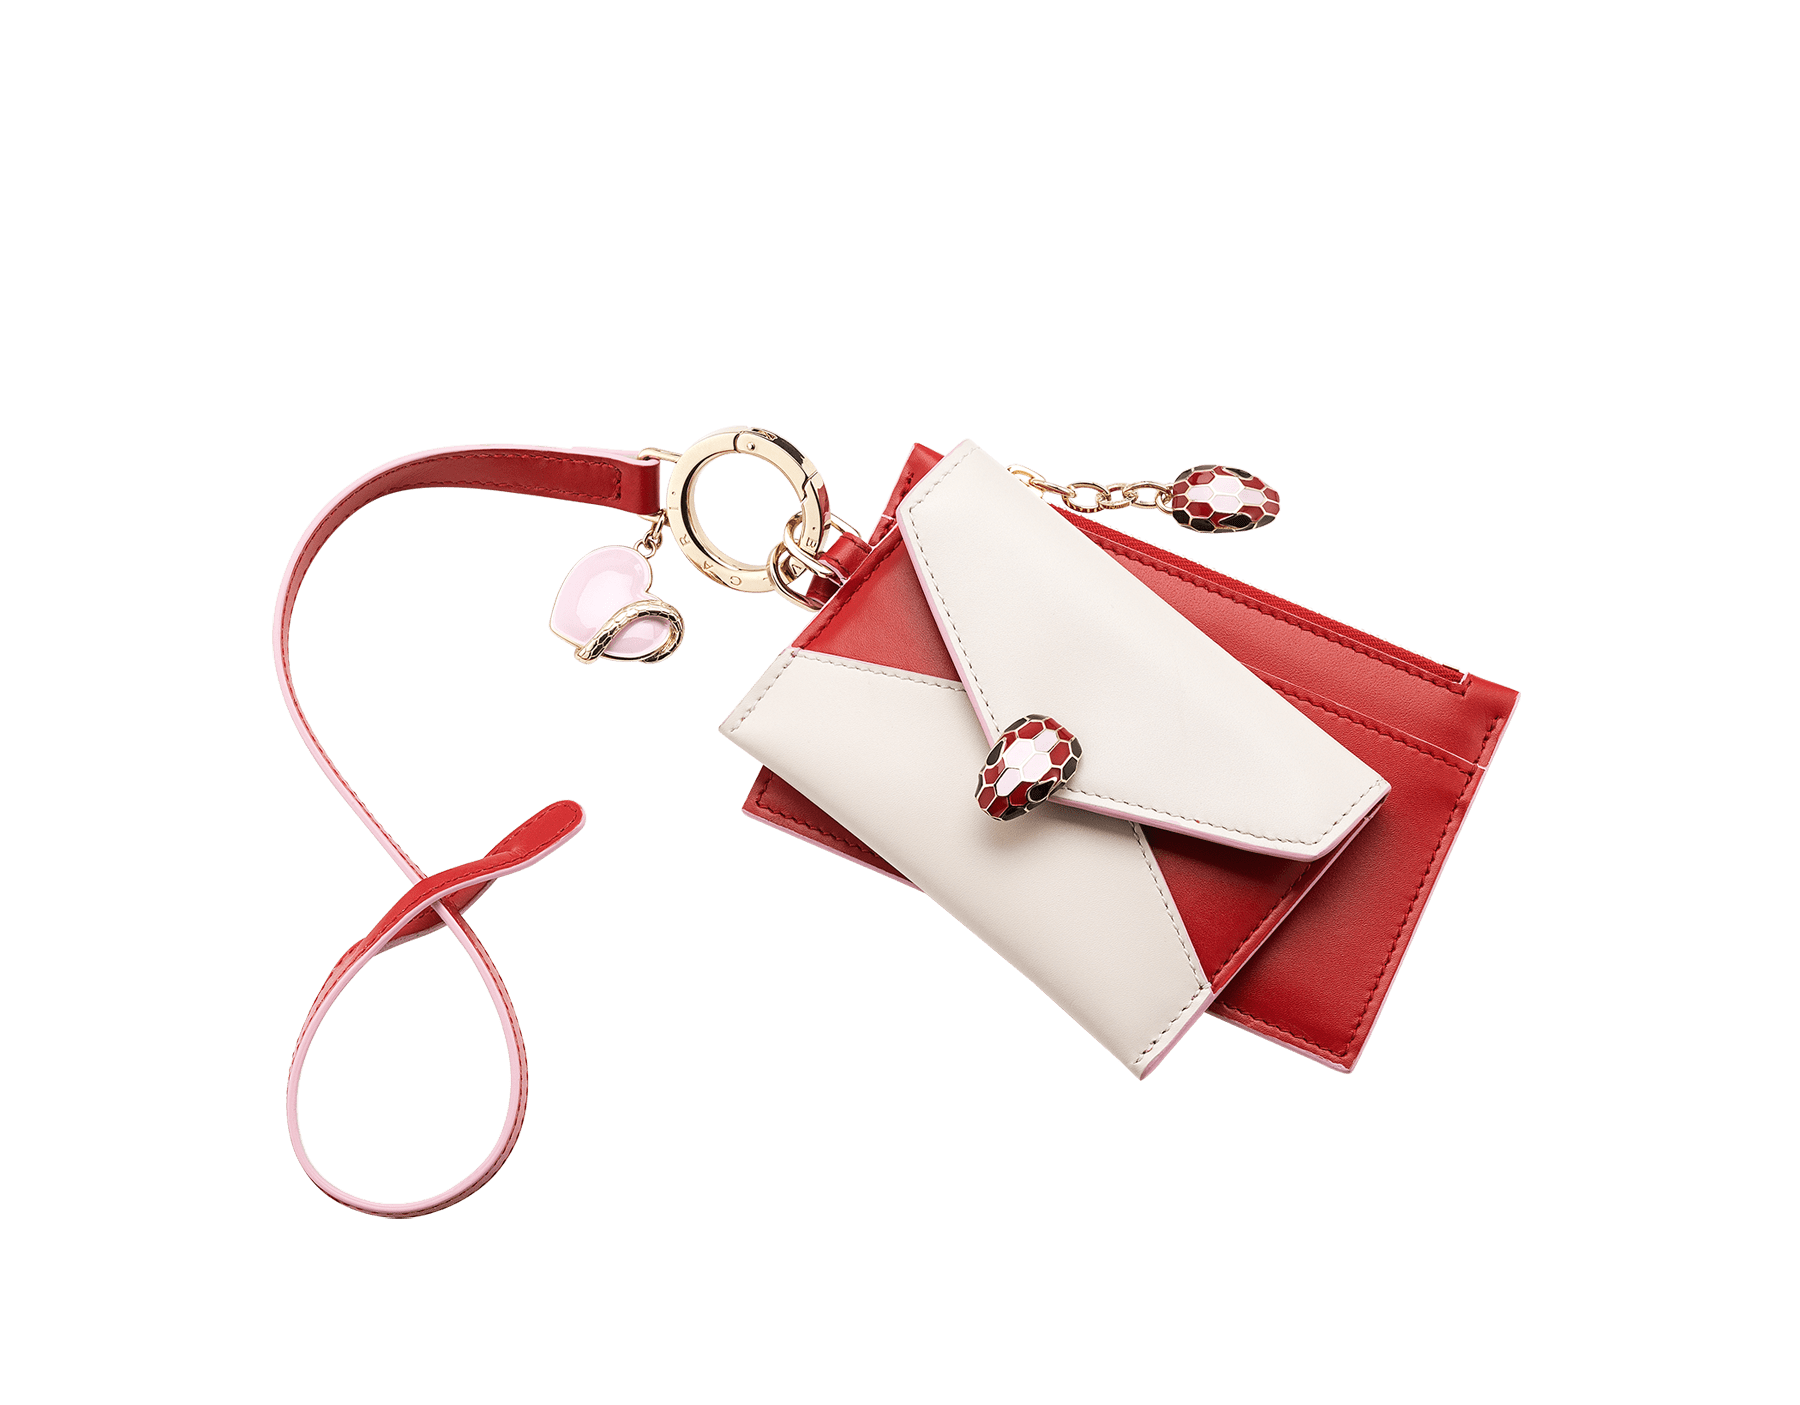 Serpenti Forever Duo card holder and coin purse in carmine jasper and rosa di Francia calf leather. Brass light gold plated key ring with a pink heart-shaped charm, snakehead stud closure and snakehead zip puller with black, carmine jasper and rosa di Francia enamel, and black enamel eyes. 289555 image 1